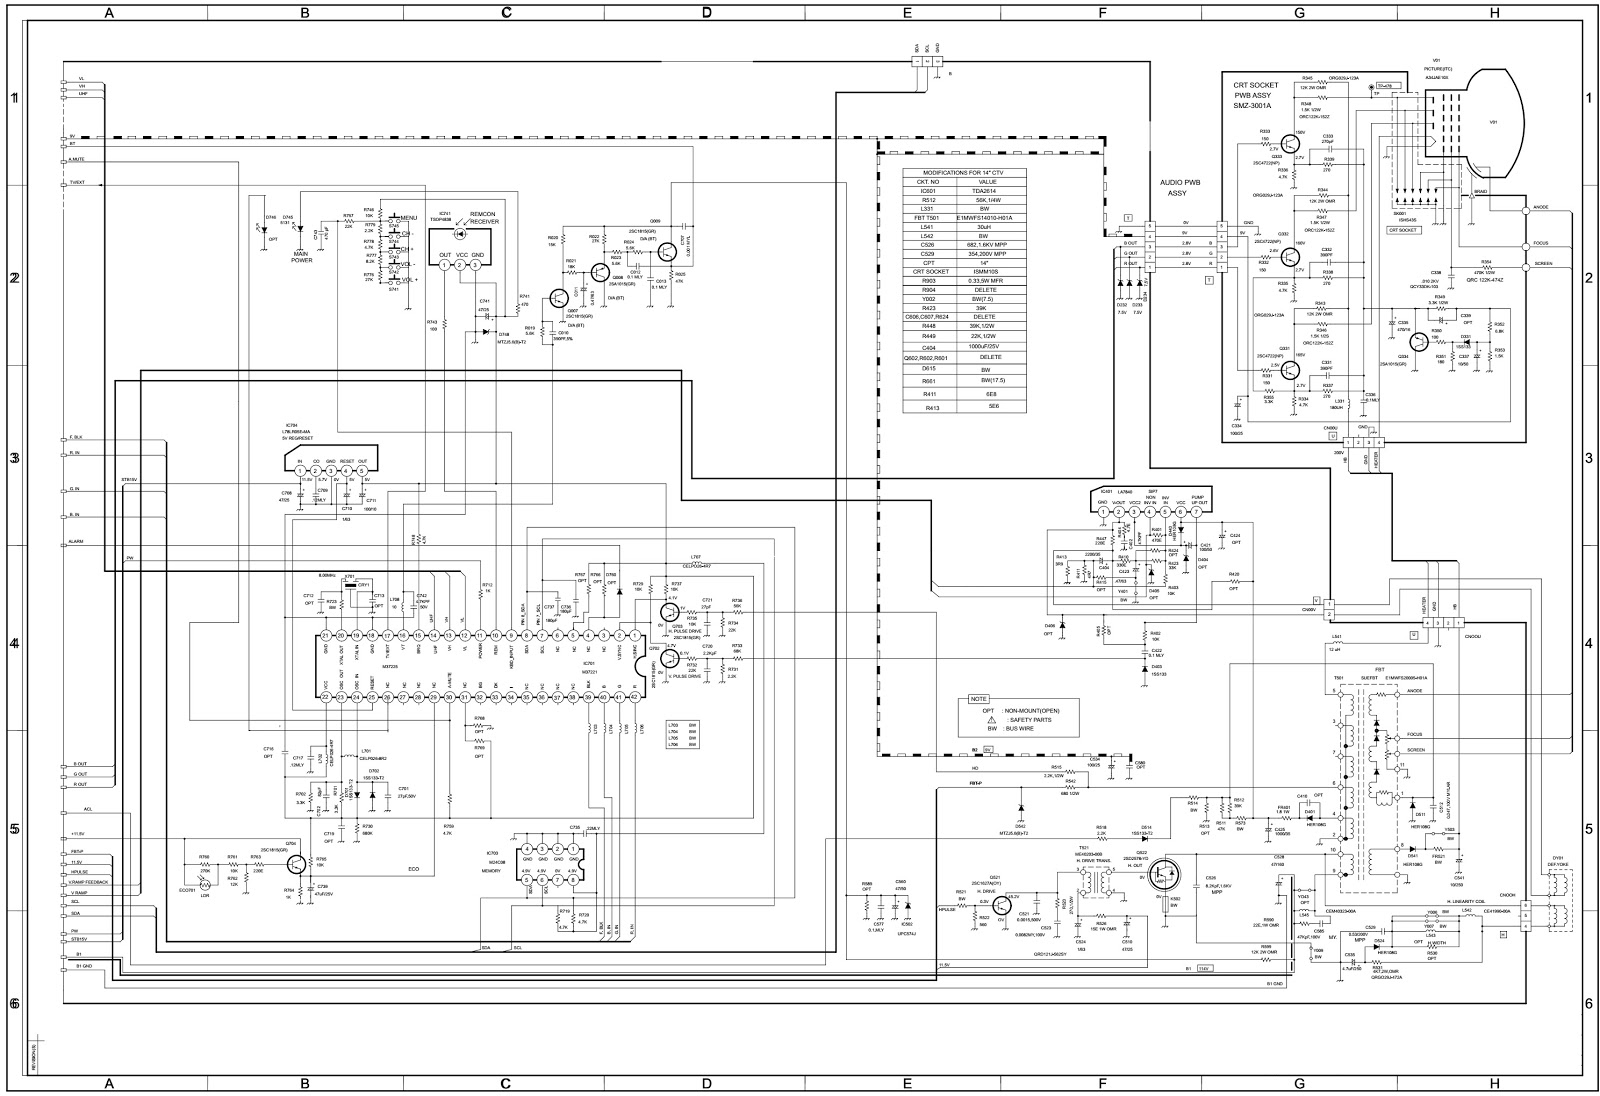 pt100 sensor wiring diagram critical temperature in iron carbon asv rtd